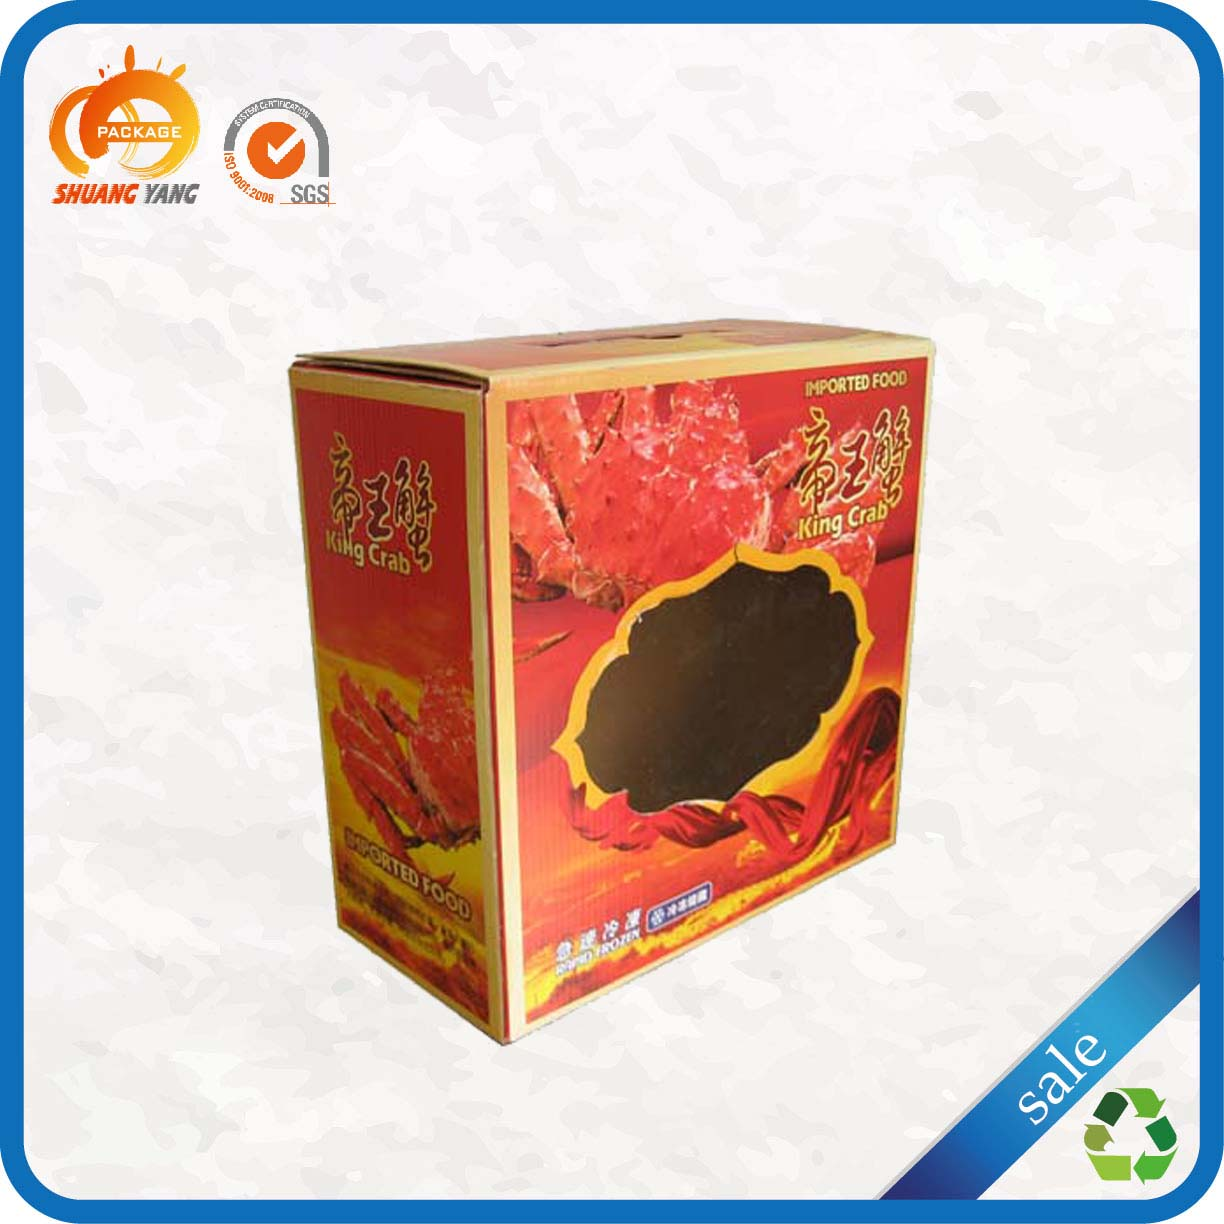 Outstanding quality wholesale cardboard live king crab packaging box